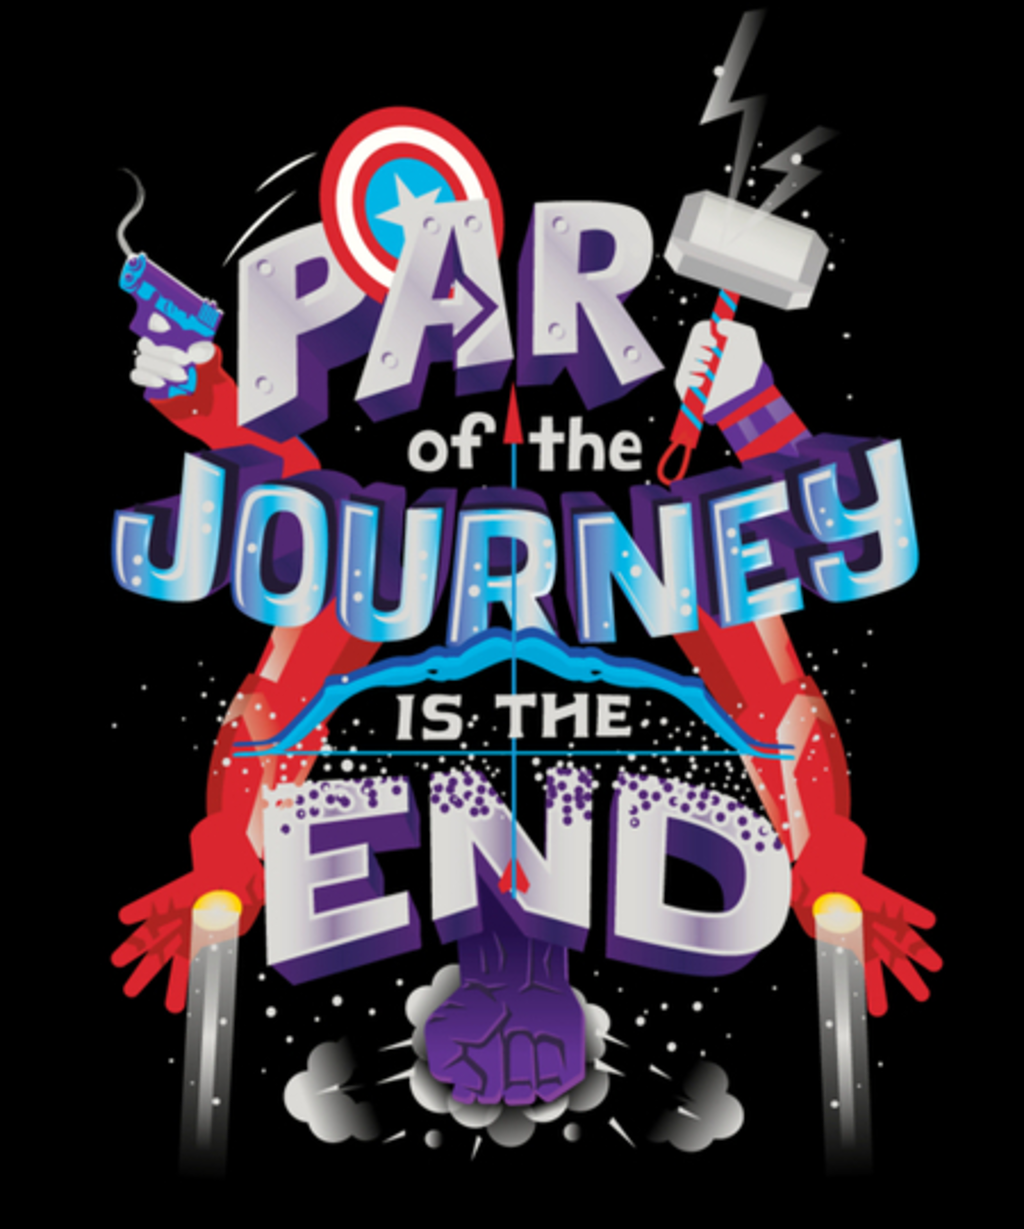 Qwertee: Part of the Journey